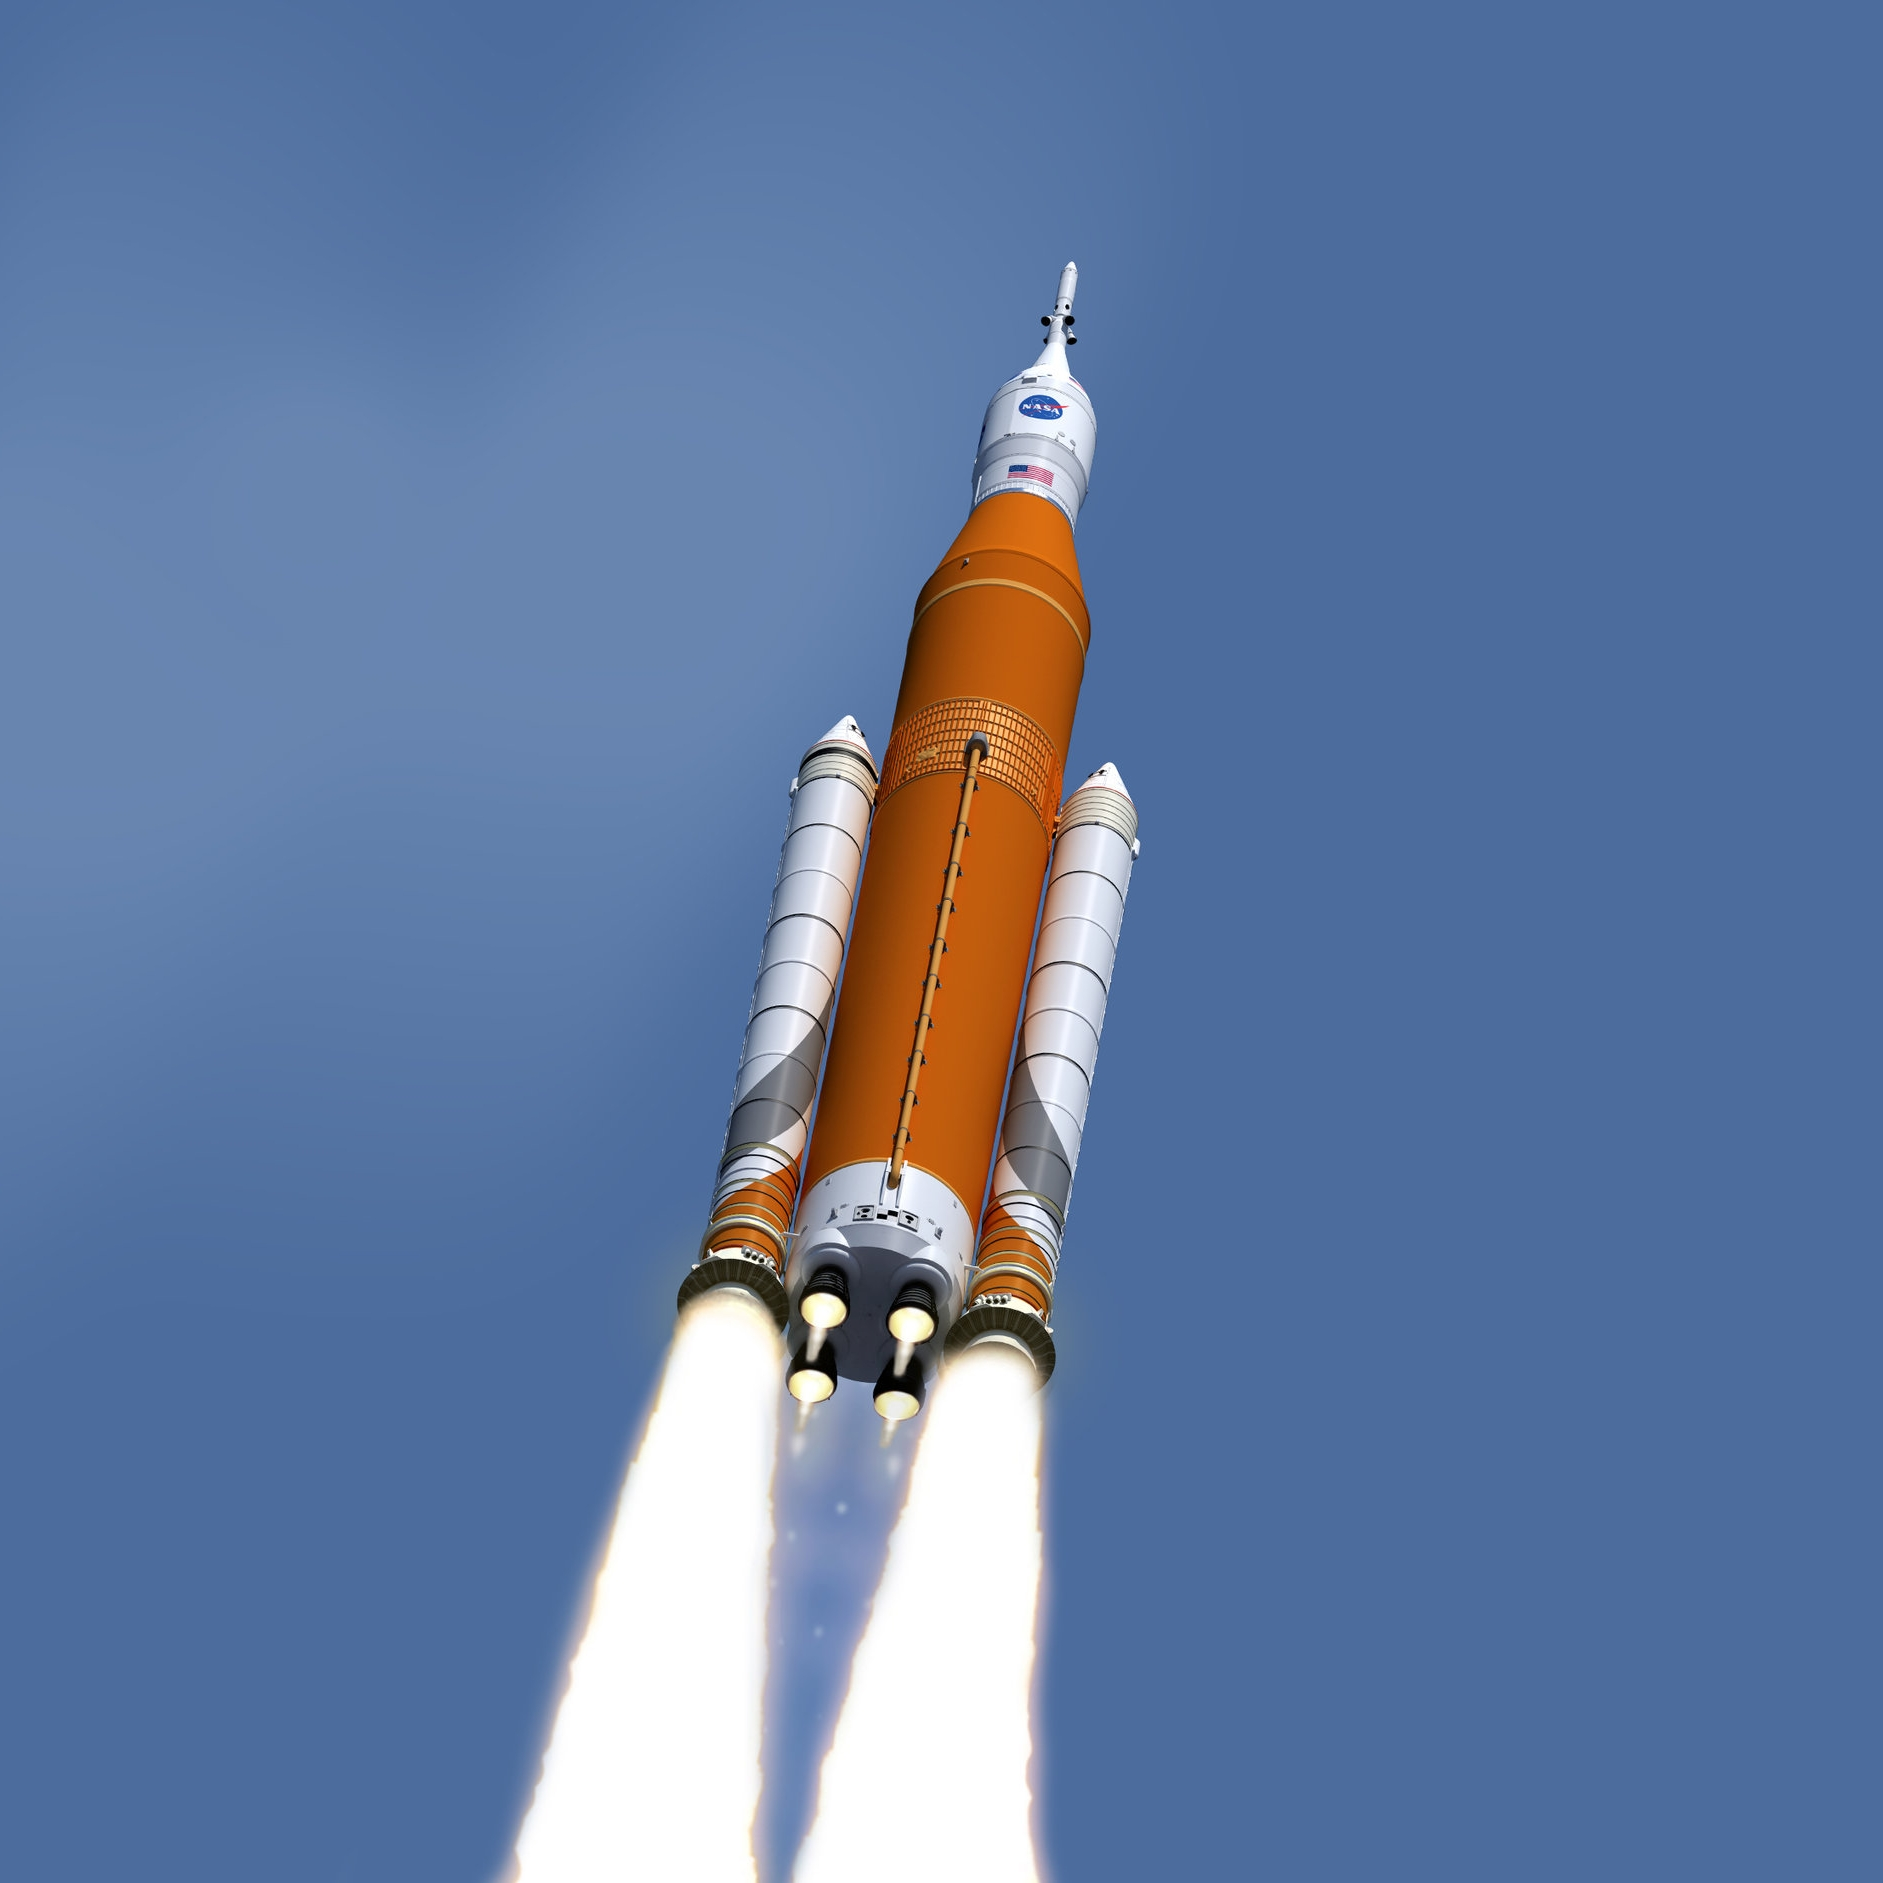 NASA's SLS - Now this is one big rocket, long time in development and extremely expensive… and counting!Height: 365 feet tallThrust: 9.2 million pounds (51 Boeings)Payload: 286,000 lbs (30 elephants)Cost of each launch: $500 million